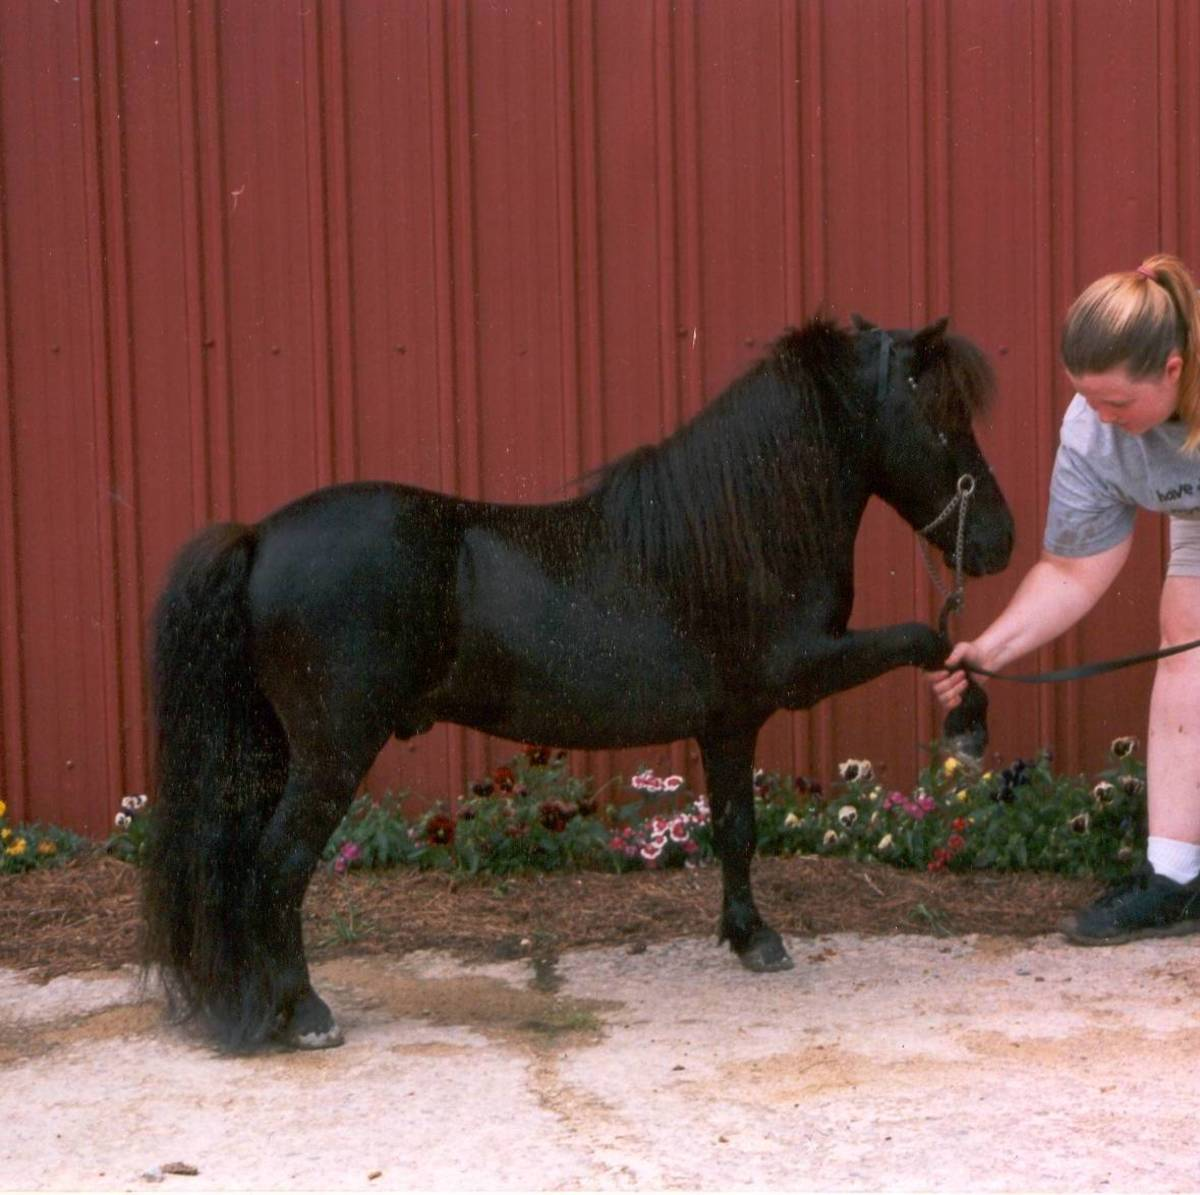 AMHA Domino shakes hands with a friend. photo copyright donna campbell smith